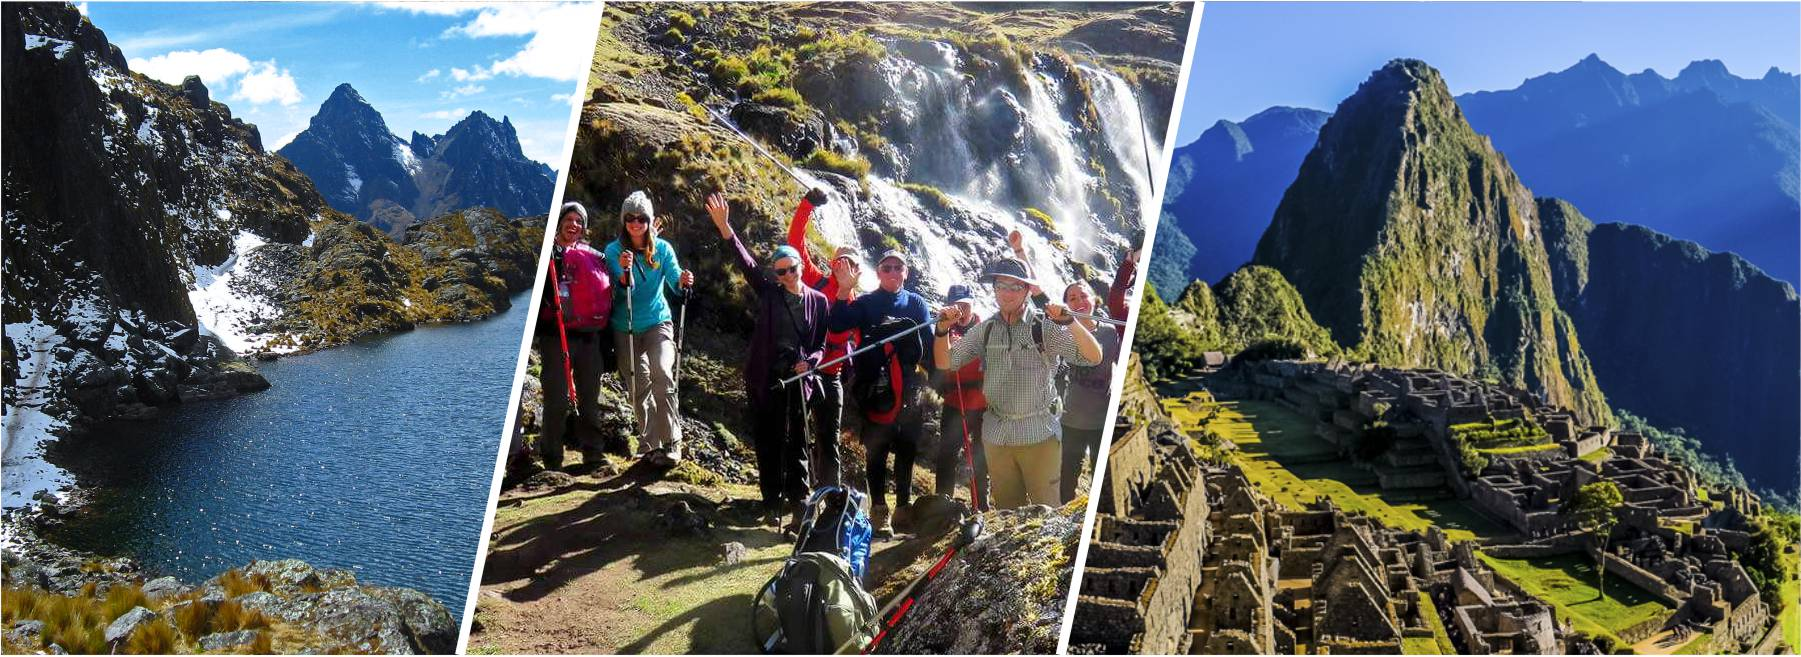 lares trek to machu picchu offer